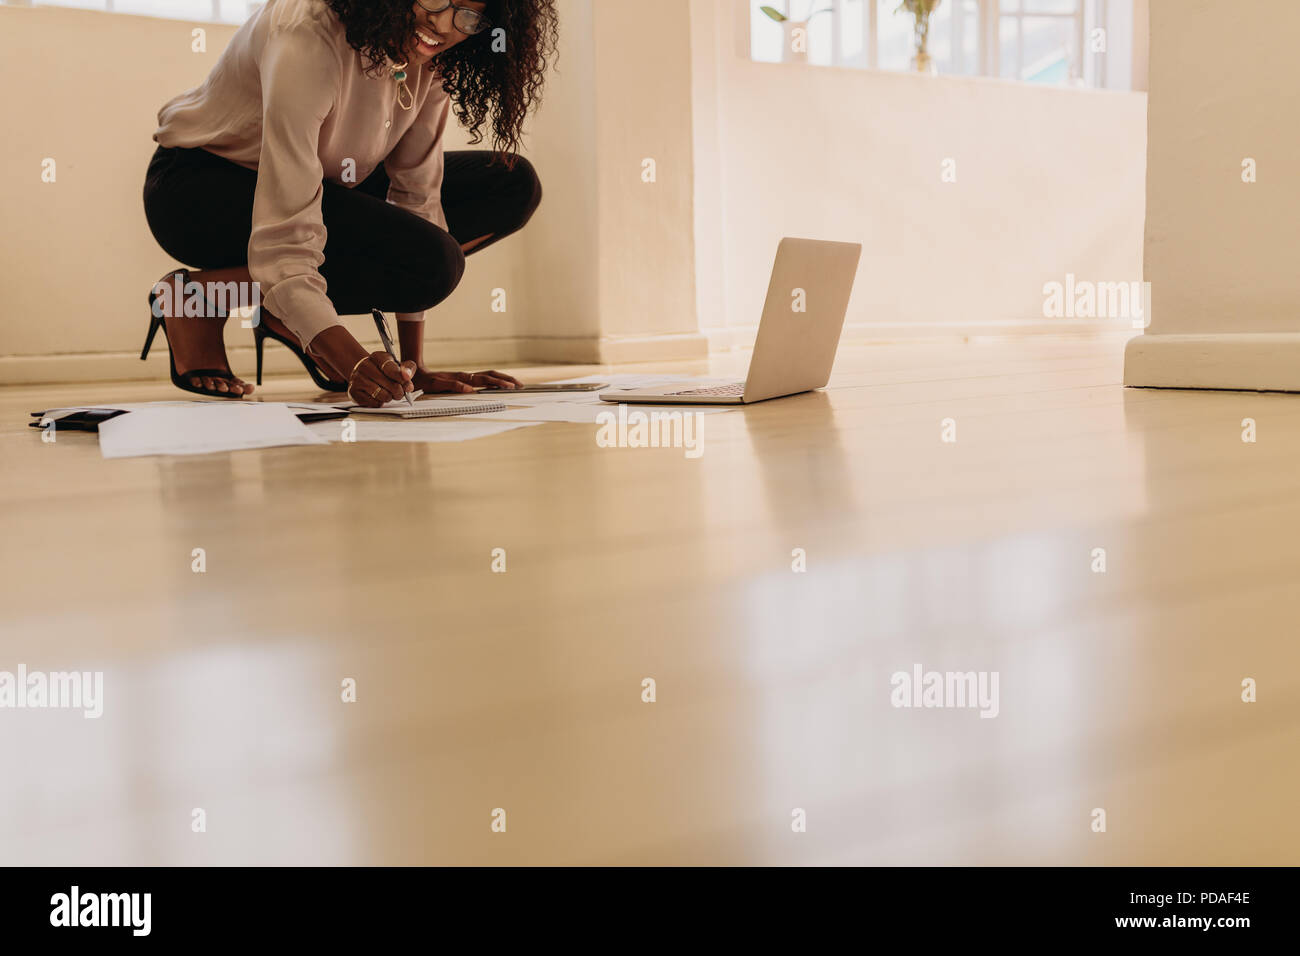 Femme entrepreneur en tenue de prendre des notes tout en travaillant sur un ordinateur portable à la maison. Businesswoman sitting on floor portaient des sandales à la maison maki Photo Stock